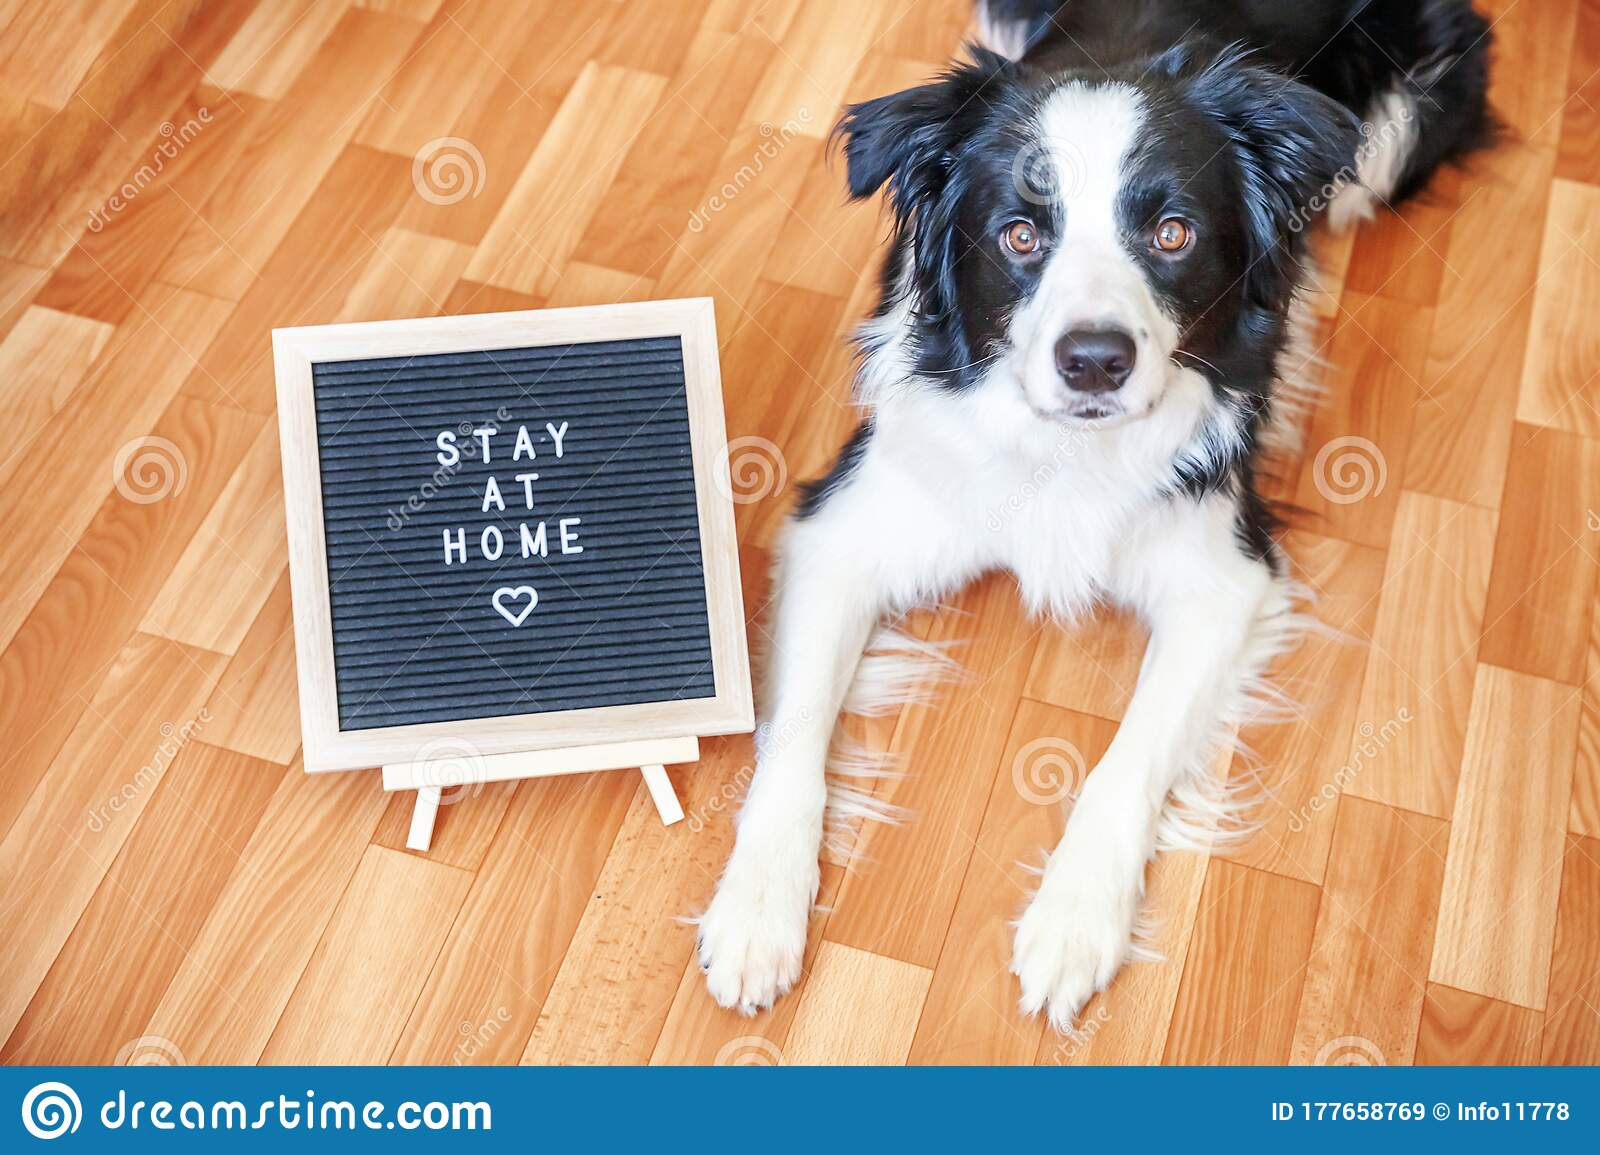 Stay Home Funny Portrait Of Cute Puppy Dog With Letter Board Inscription Stay At Home Word Lying On Floor New Lovely Stock Image Image Of Home Creature 177658769